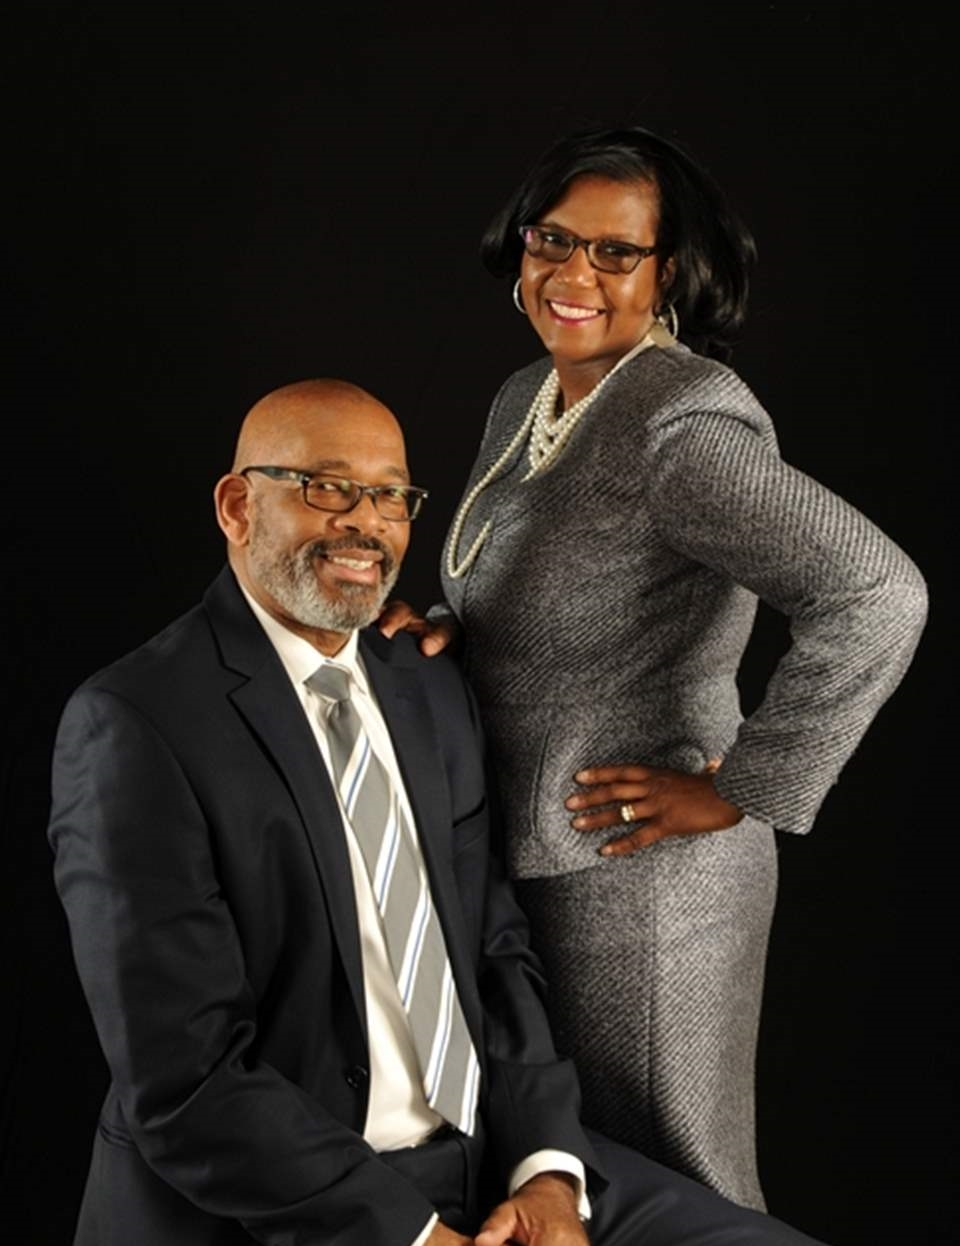 Pastor & First Lady Mckinney